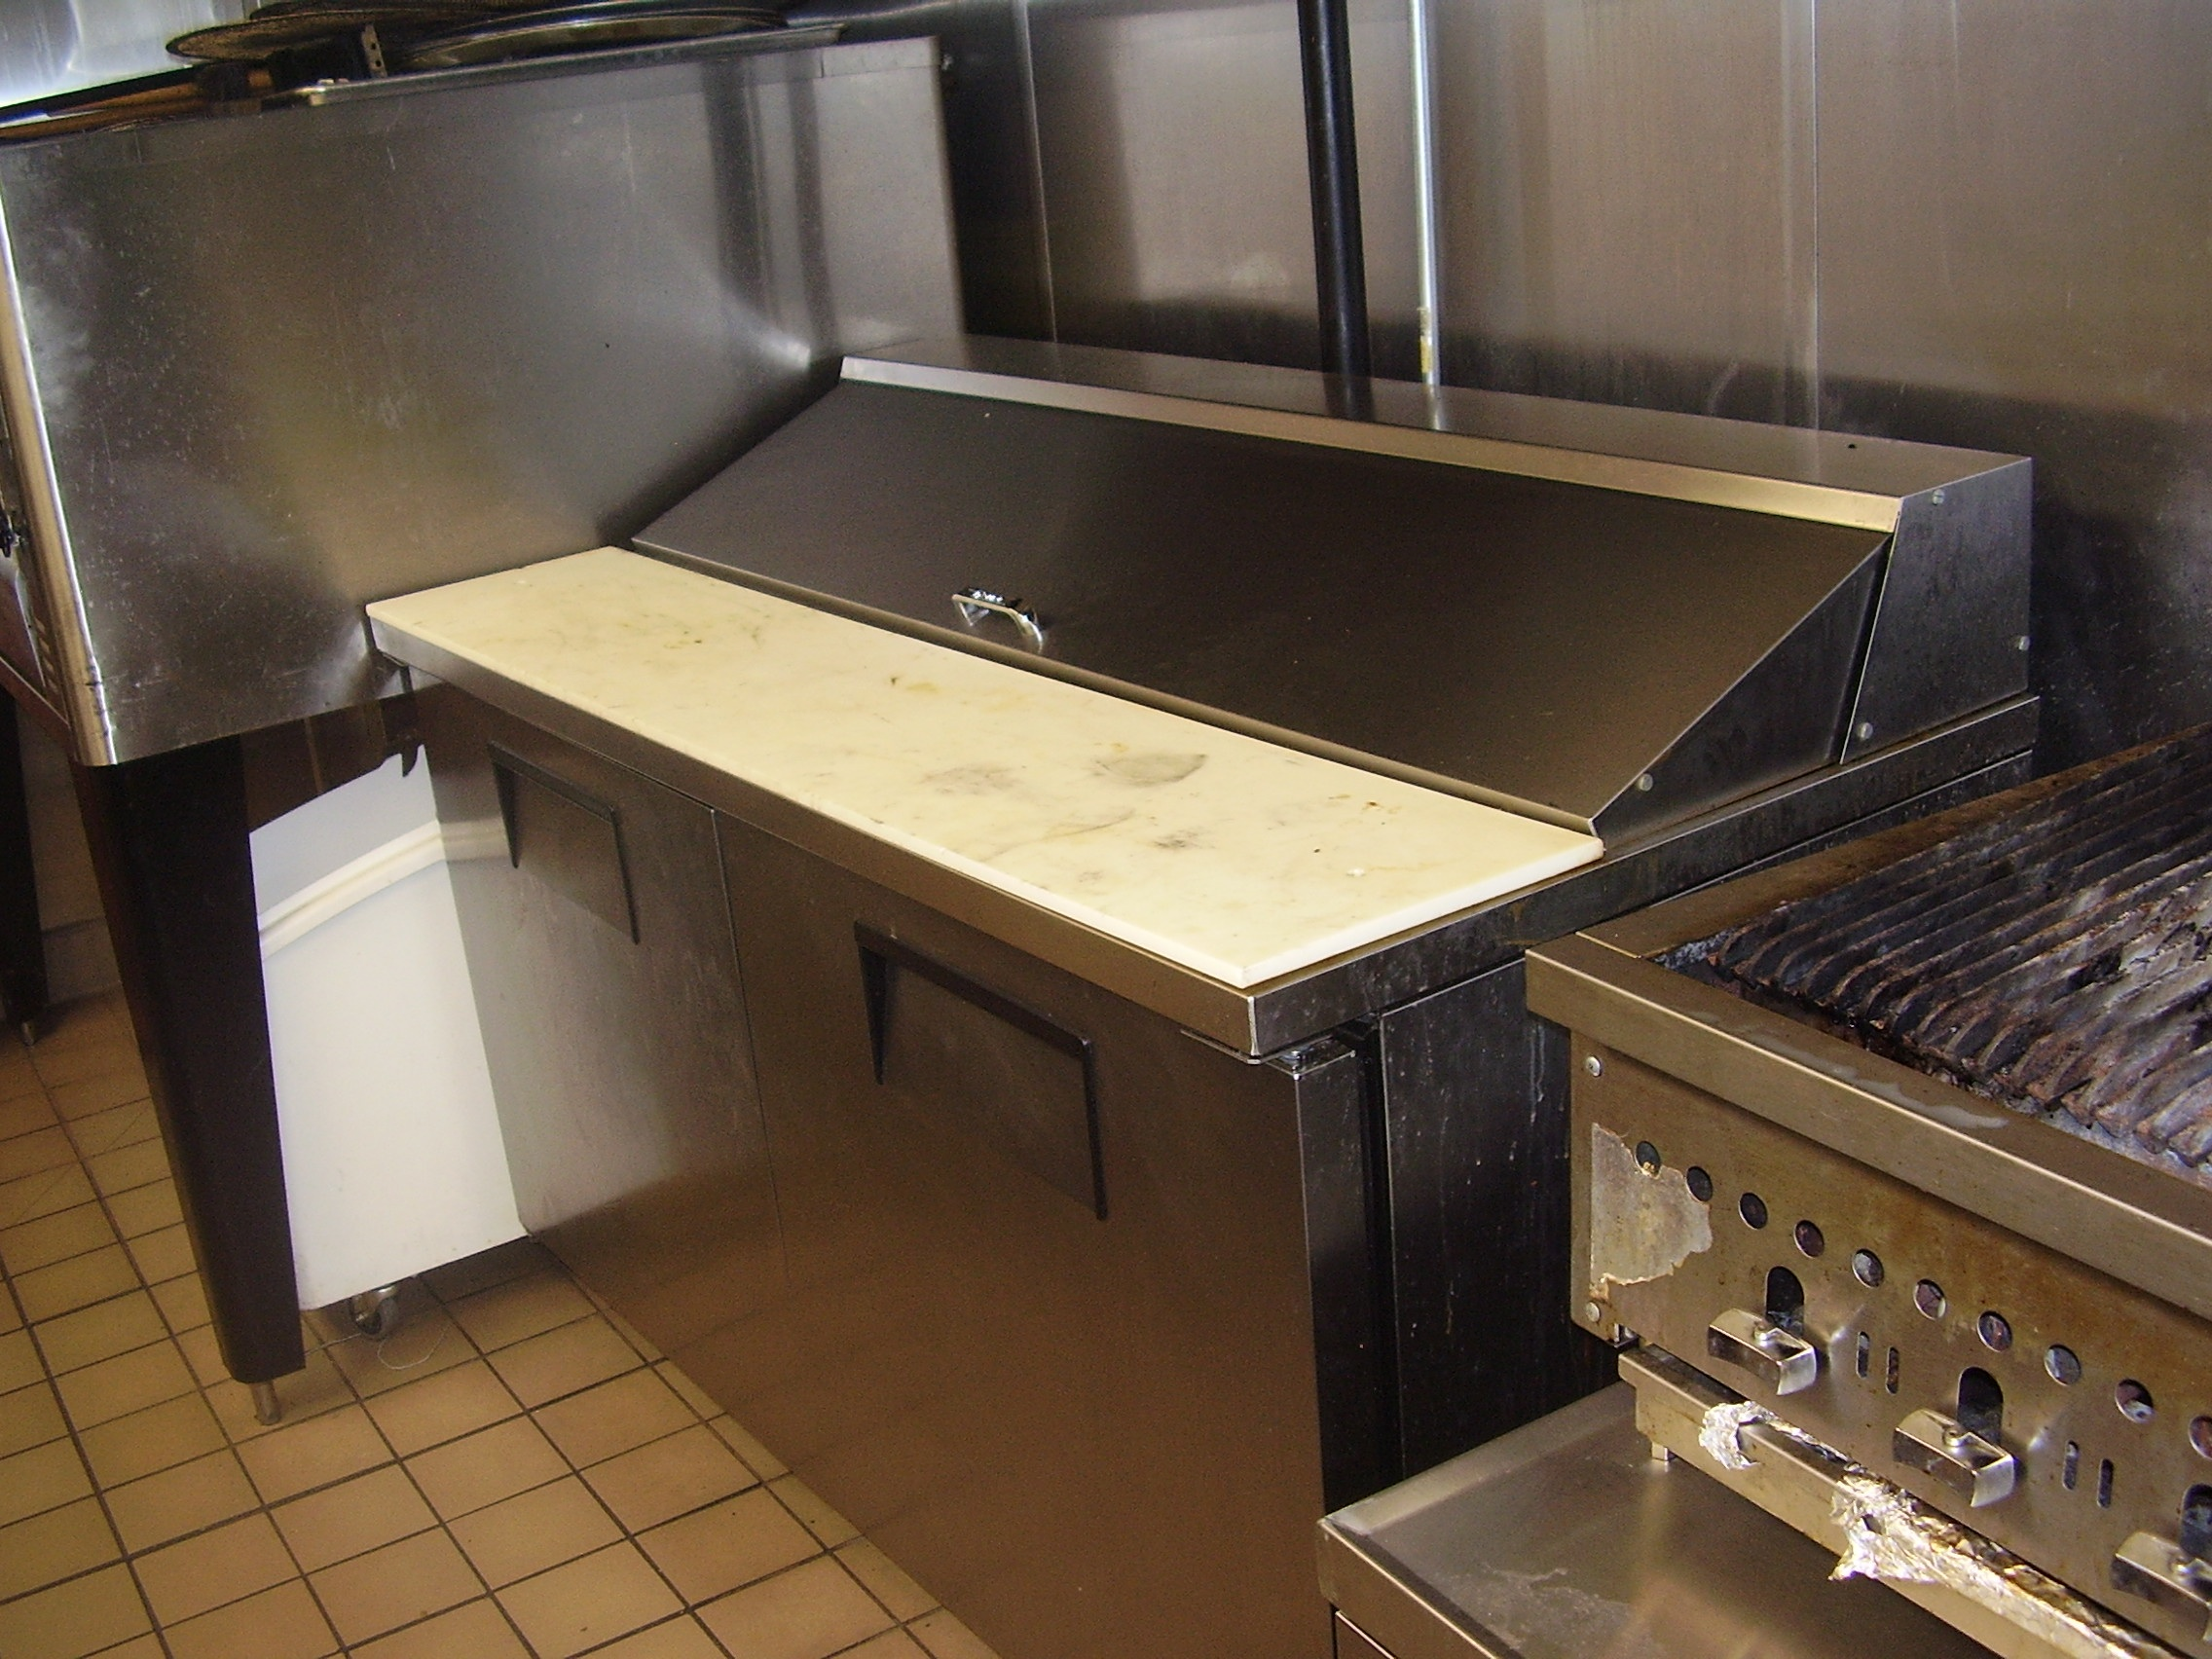 Restaurant Or Kitchens For Sale In Miami